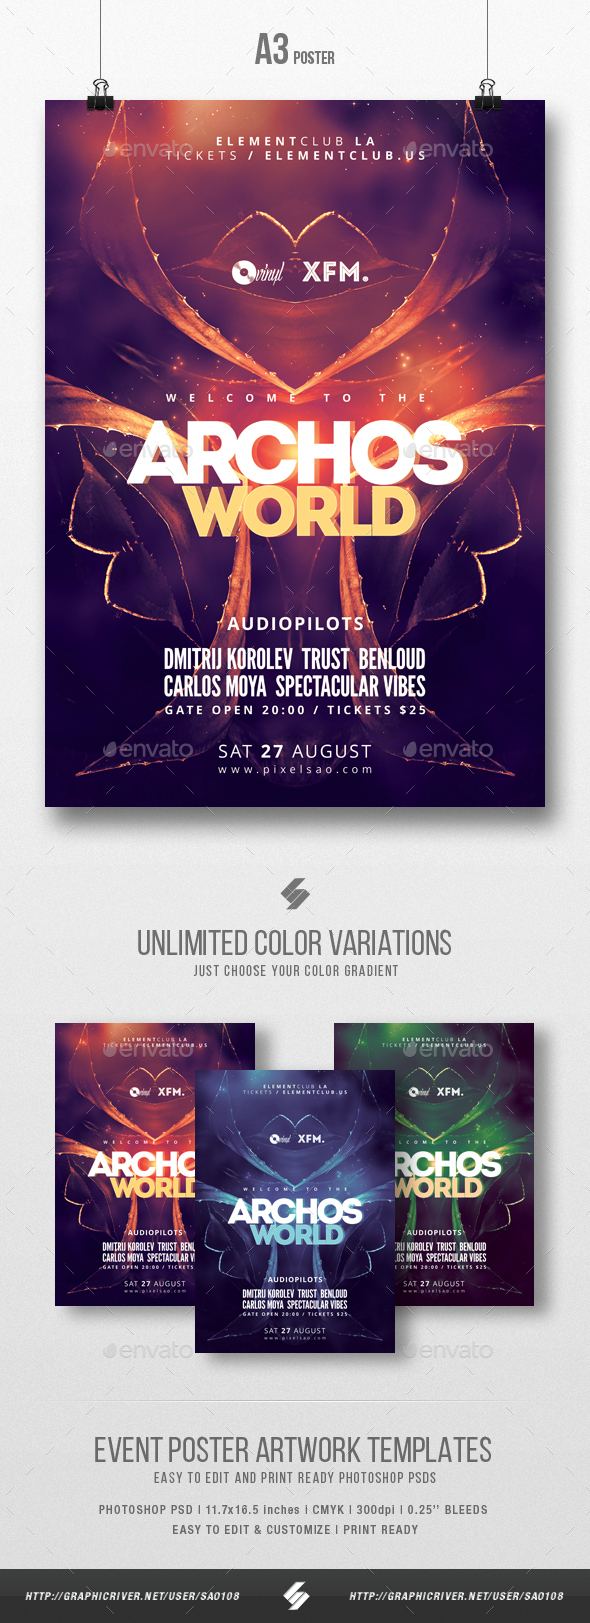 Archos World - Trance Party Flyer / Poster Template A3 - Clubs & Parties Events